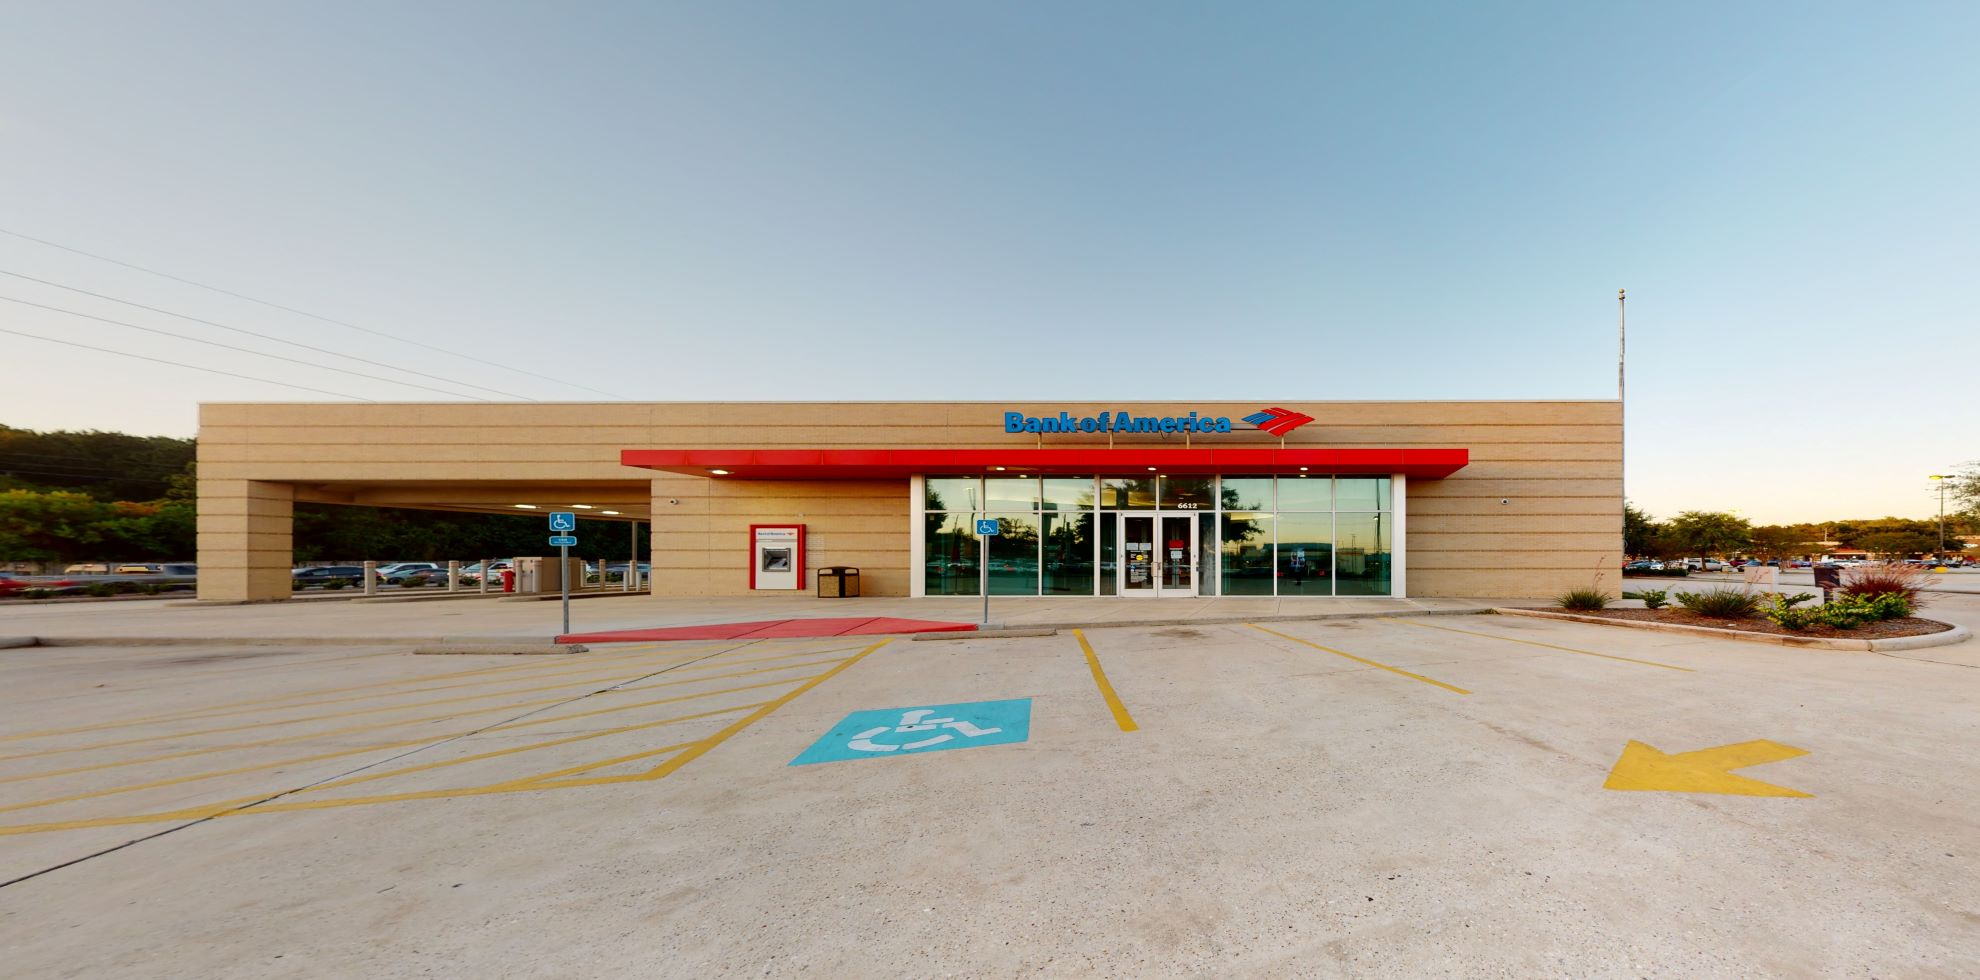 Bank of America financial center with drive-thru ATM and teller   6612 FM 1488 Rd, Magnolia, TX 77354